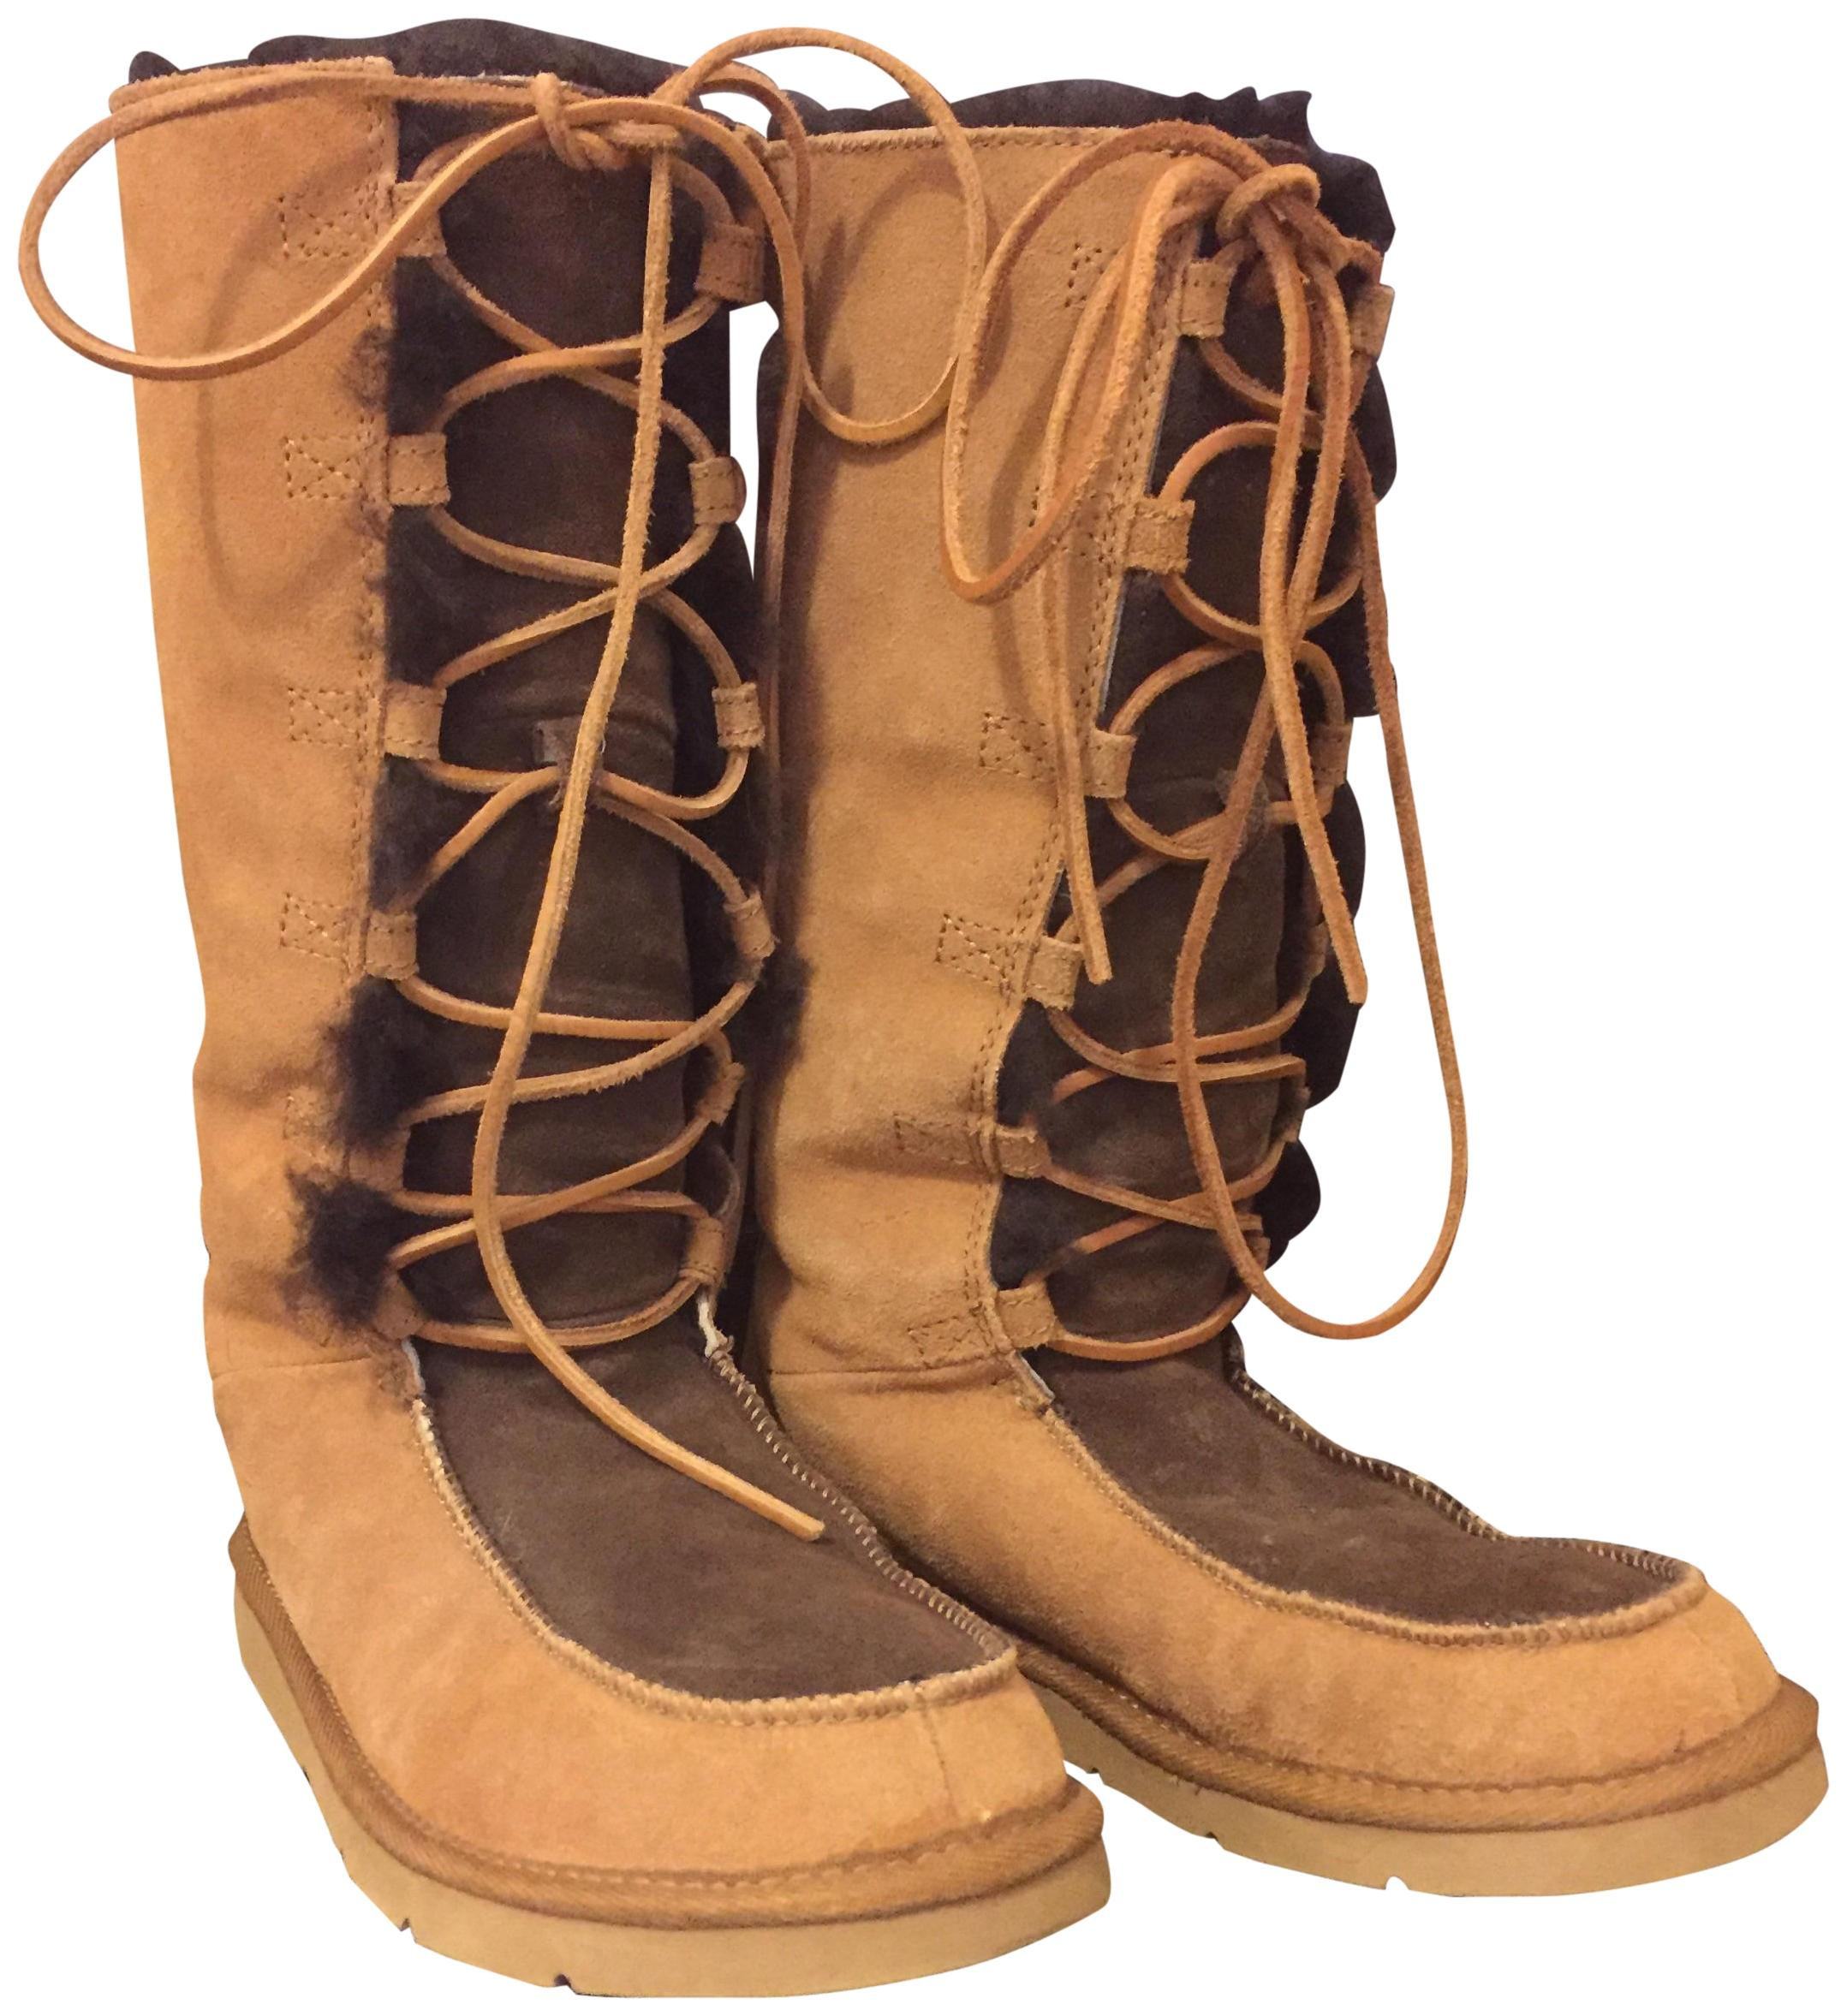 UGG Australia Winter Two Tone Lace Up Chic Multi- Brown and Tan Boots ...